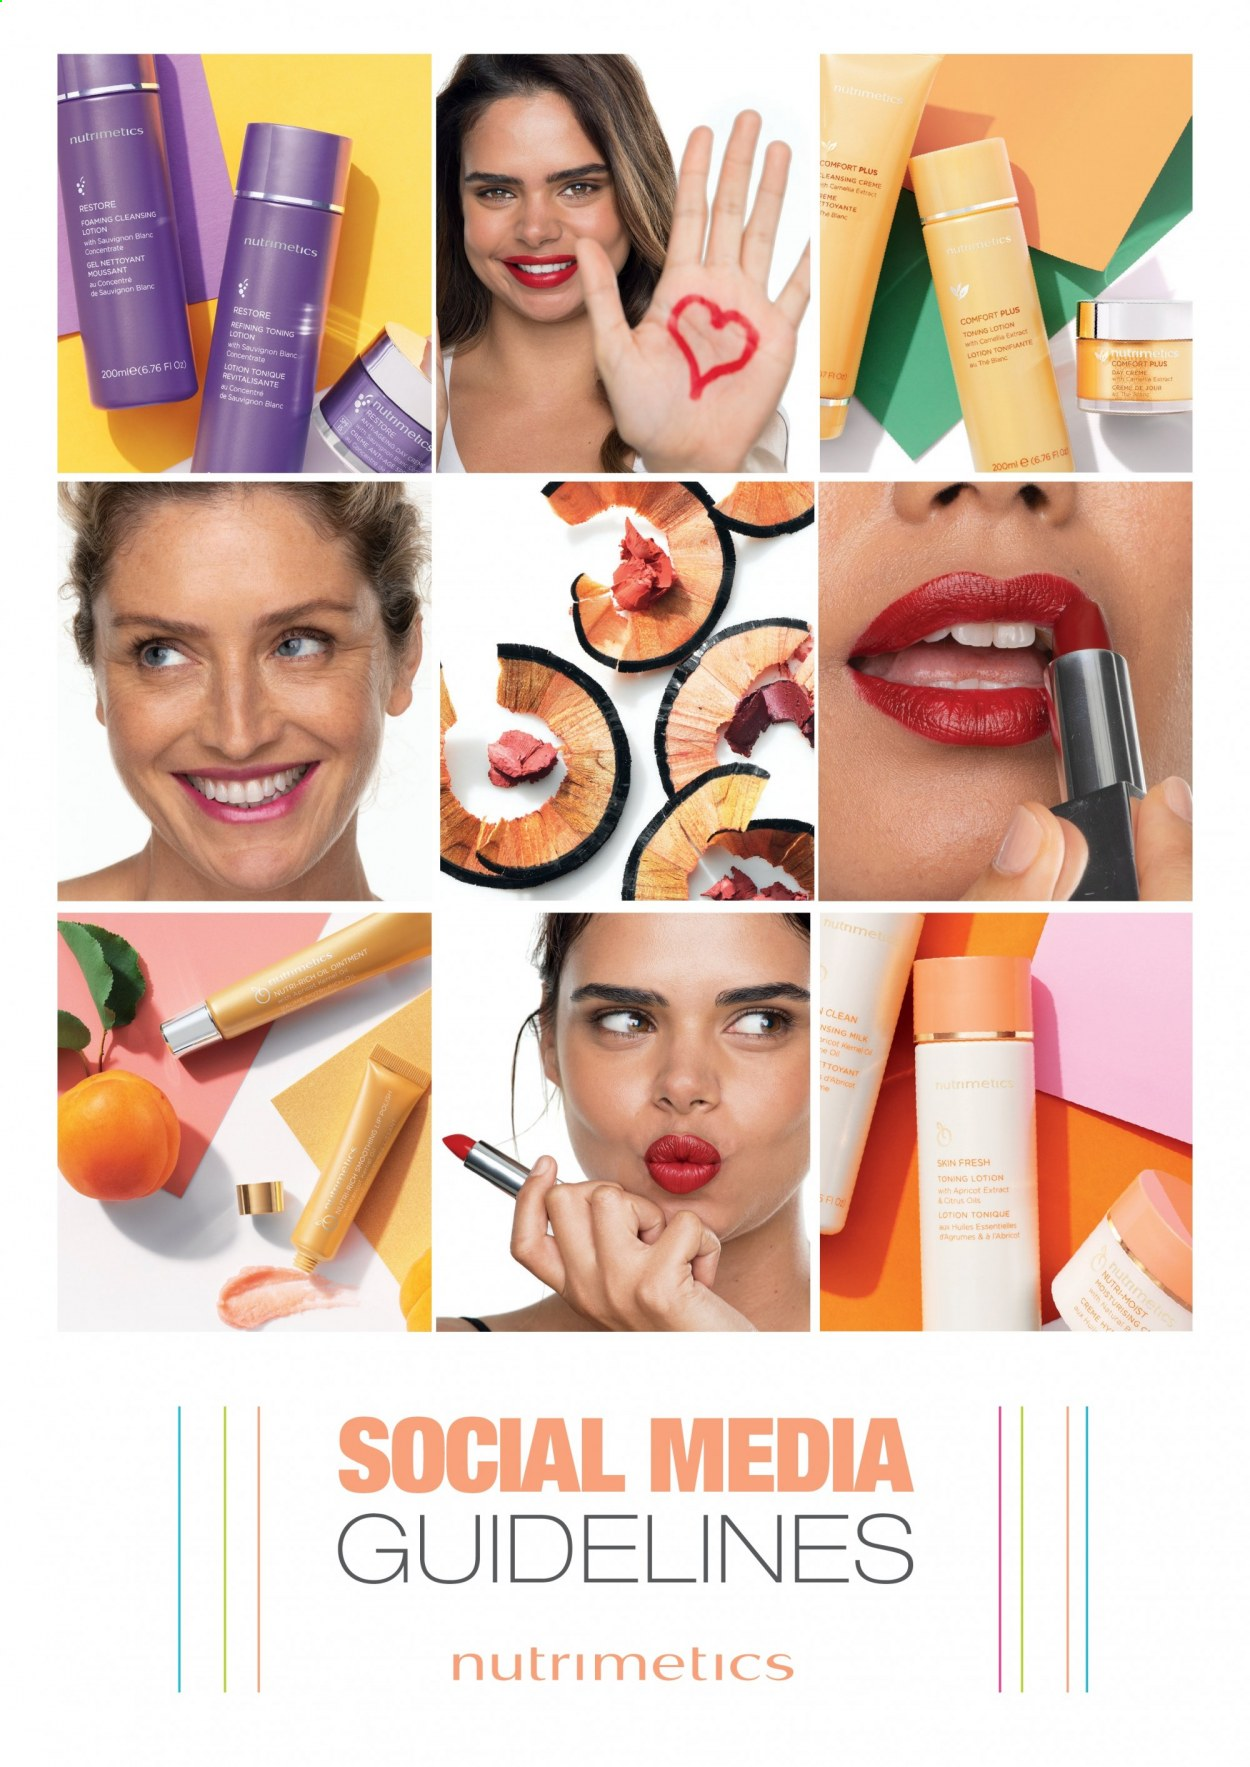 Nutrimetics Catalogue - Sales products - ointment, Nutrimetics, body lotion, oil. Page 1.